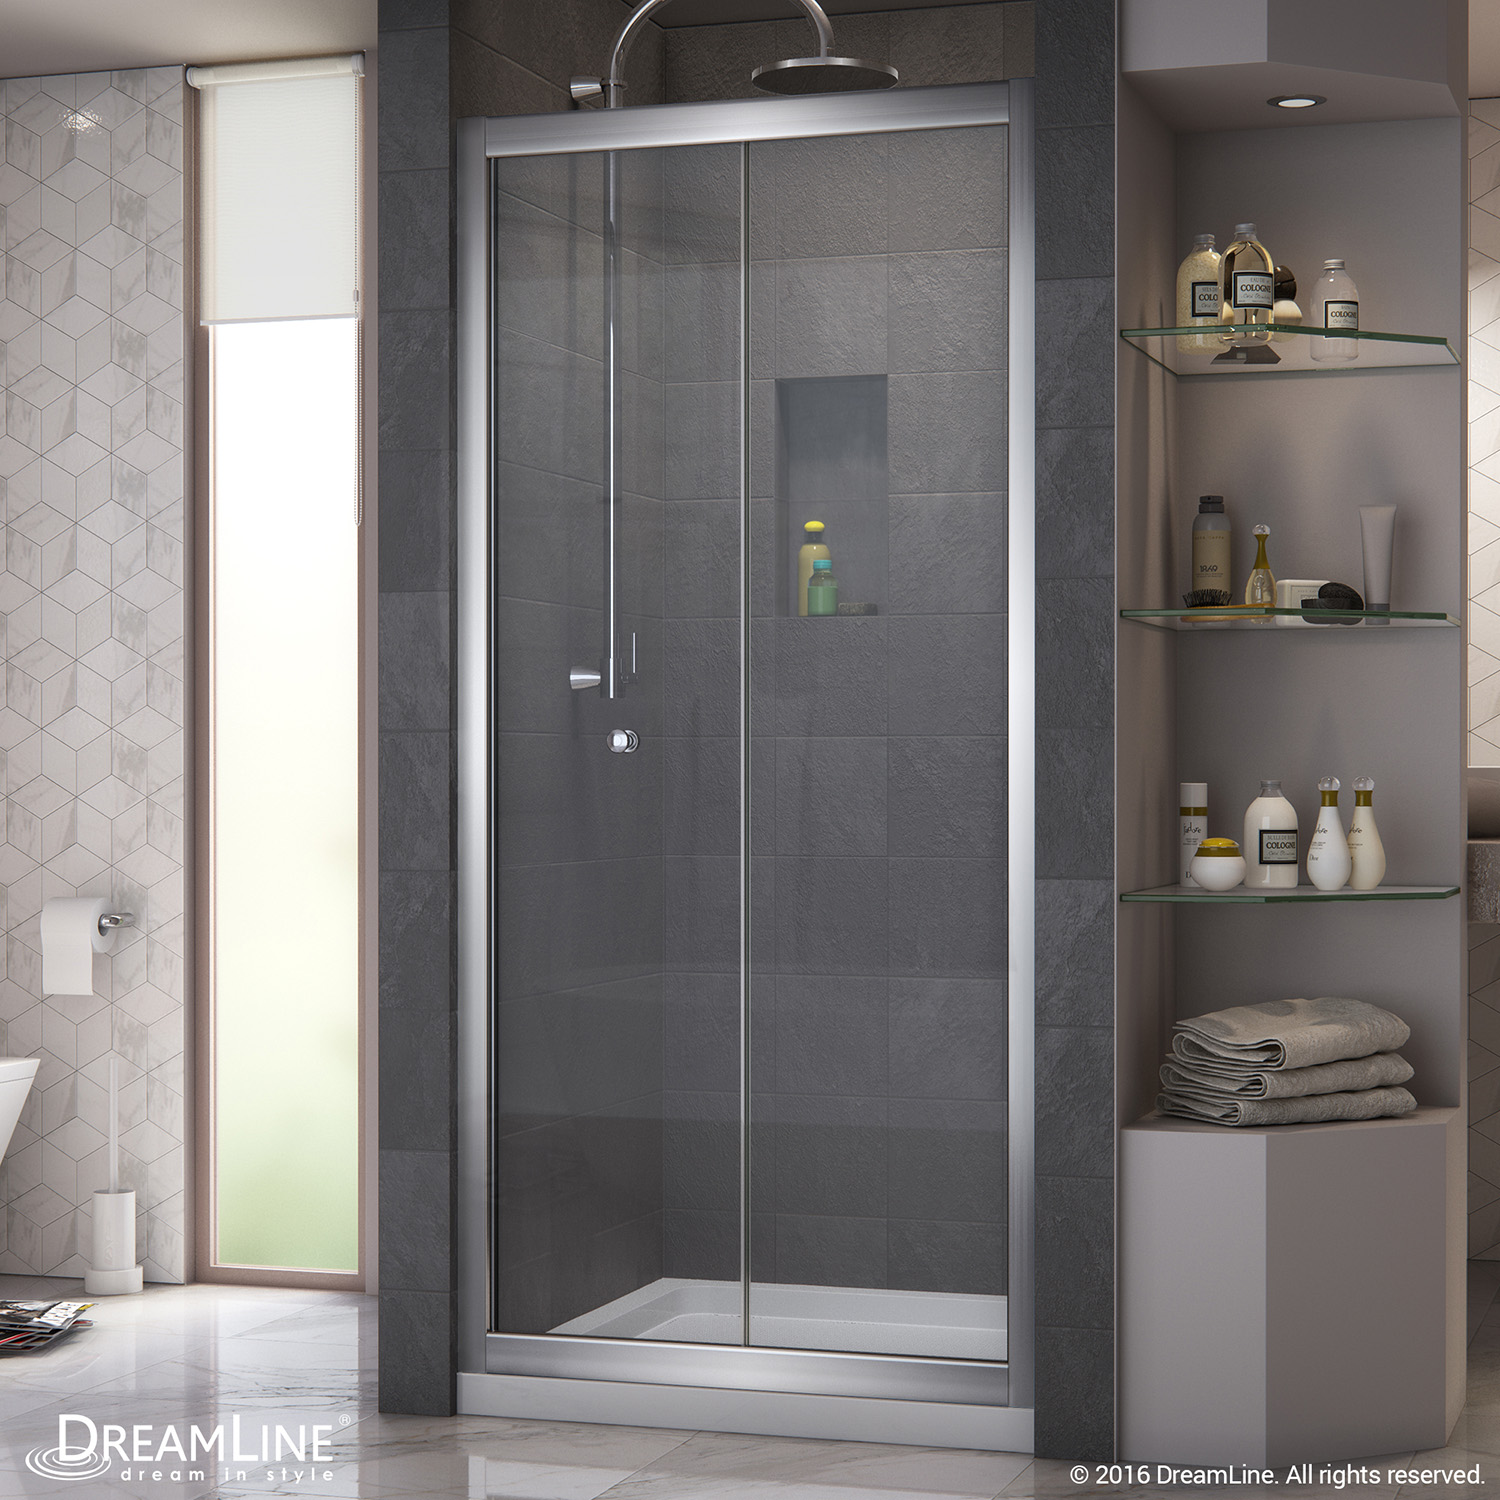 Details About Dreamline Shdr 4532726 01 Butterfly 30 31 1 2 Bi Fold Shower Door Chrome